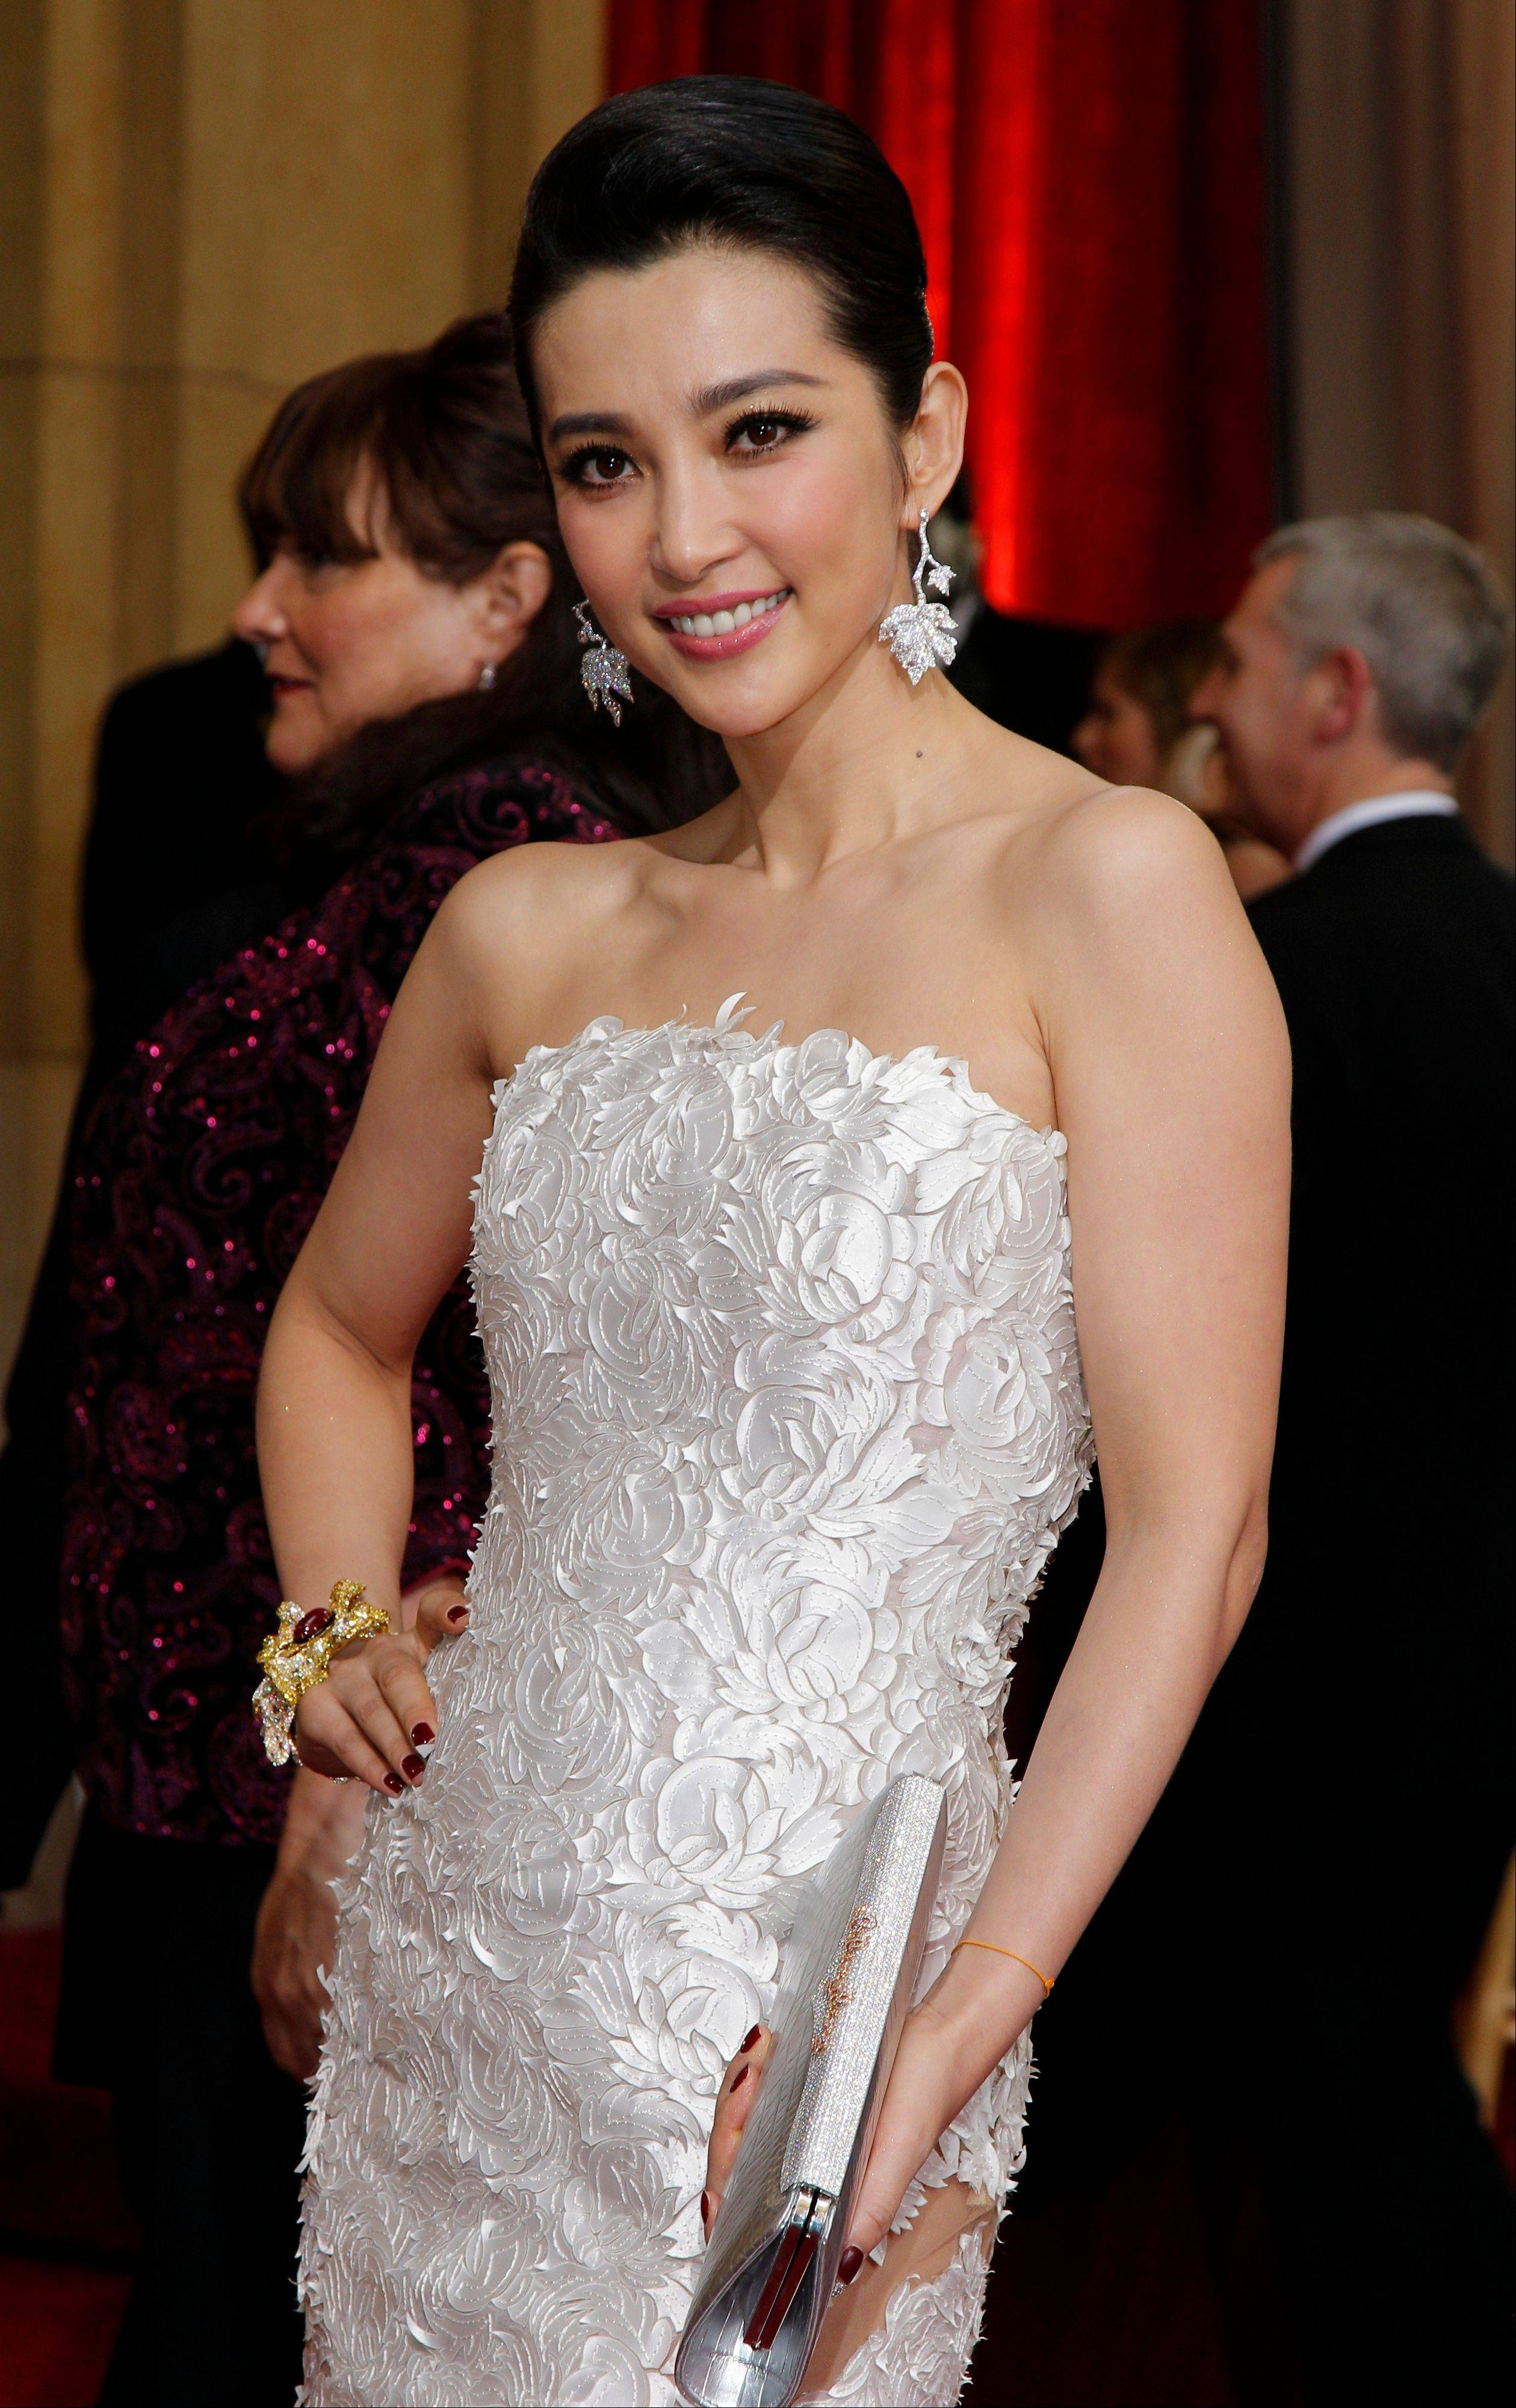 Bingbing Li models her Georges Chakra Coutre gown at the 84th Academy Awards.